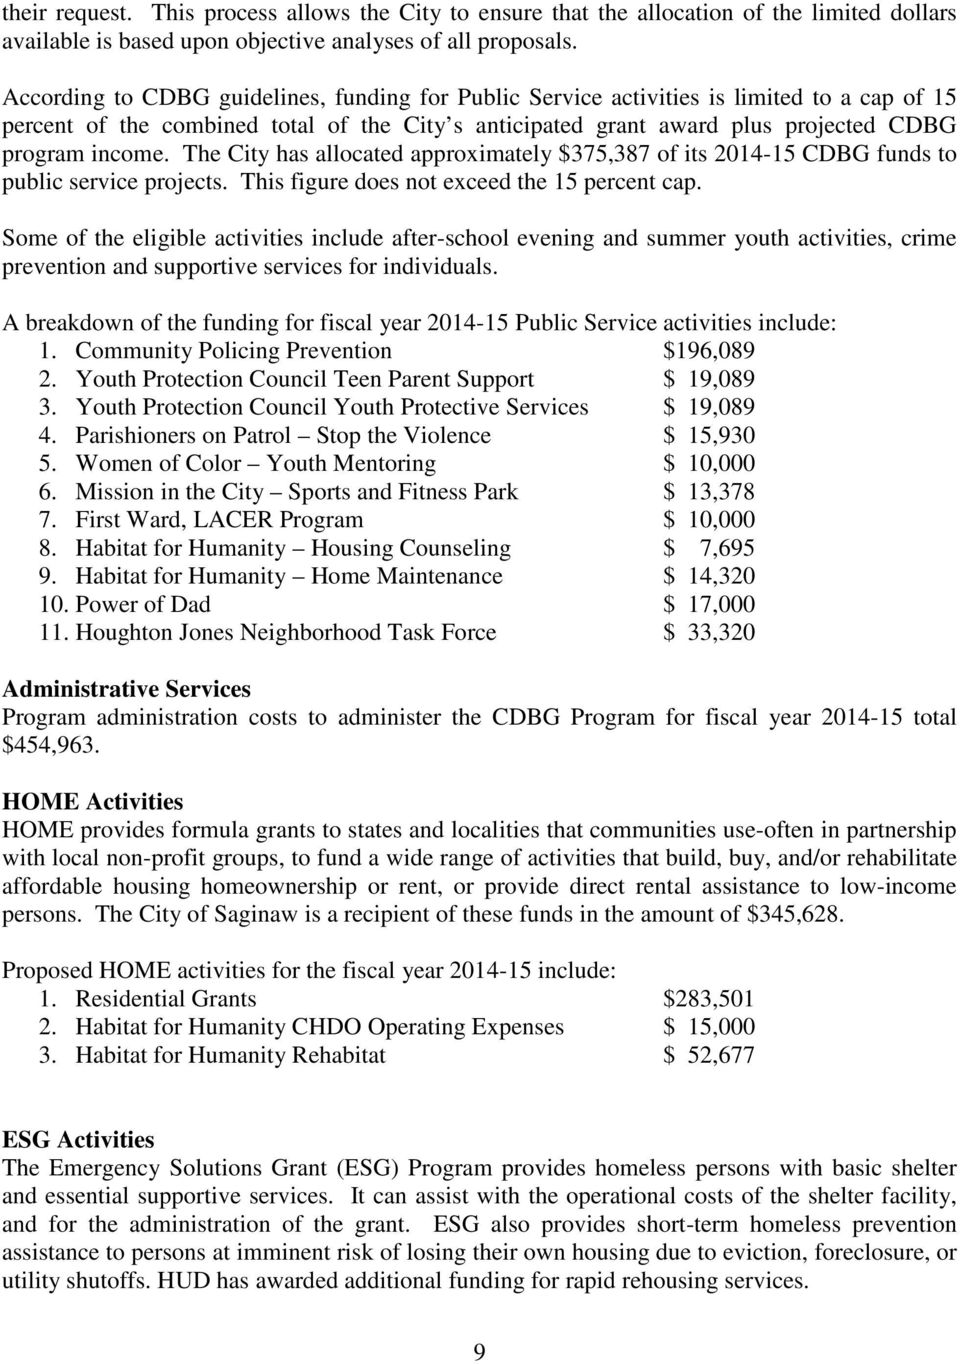 The City has allocated approximately $375,387 of its 2014-15 CDBG funds to public service projects. This figure does not exceed the 15 percent cap.